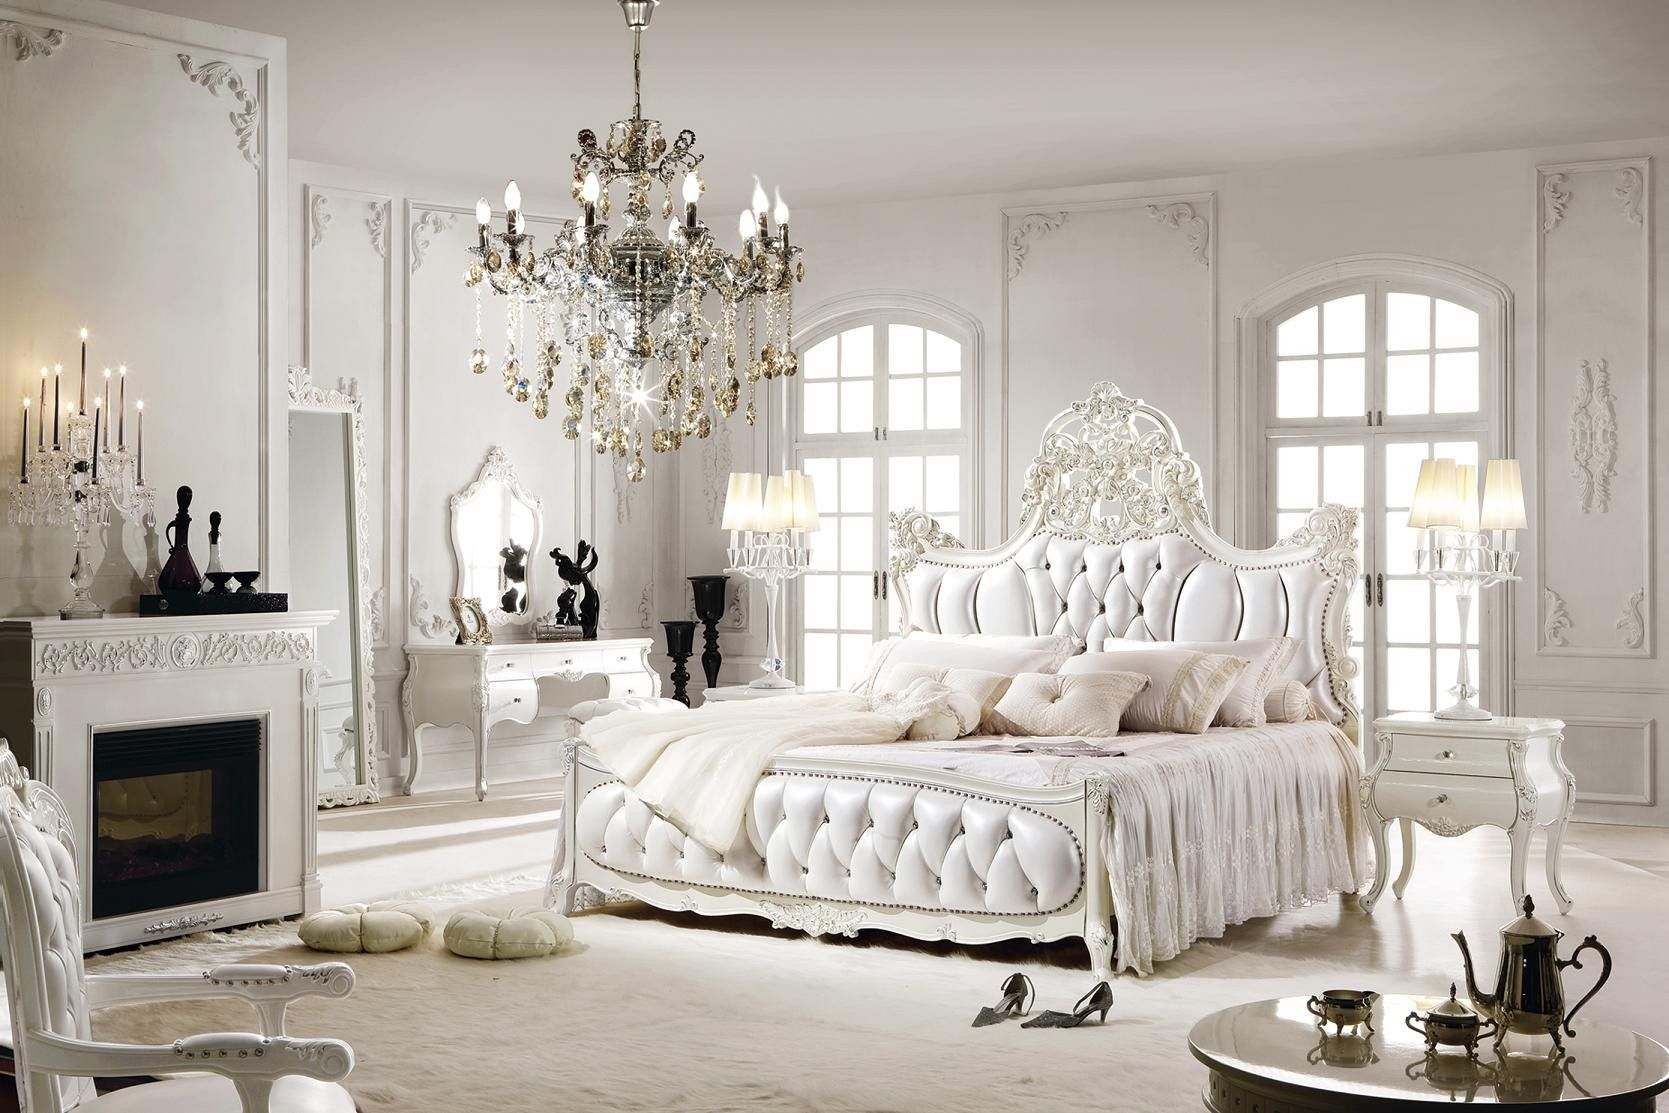 White Bedroom Interior Luxurious Bedrooms Bedroom Interior